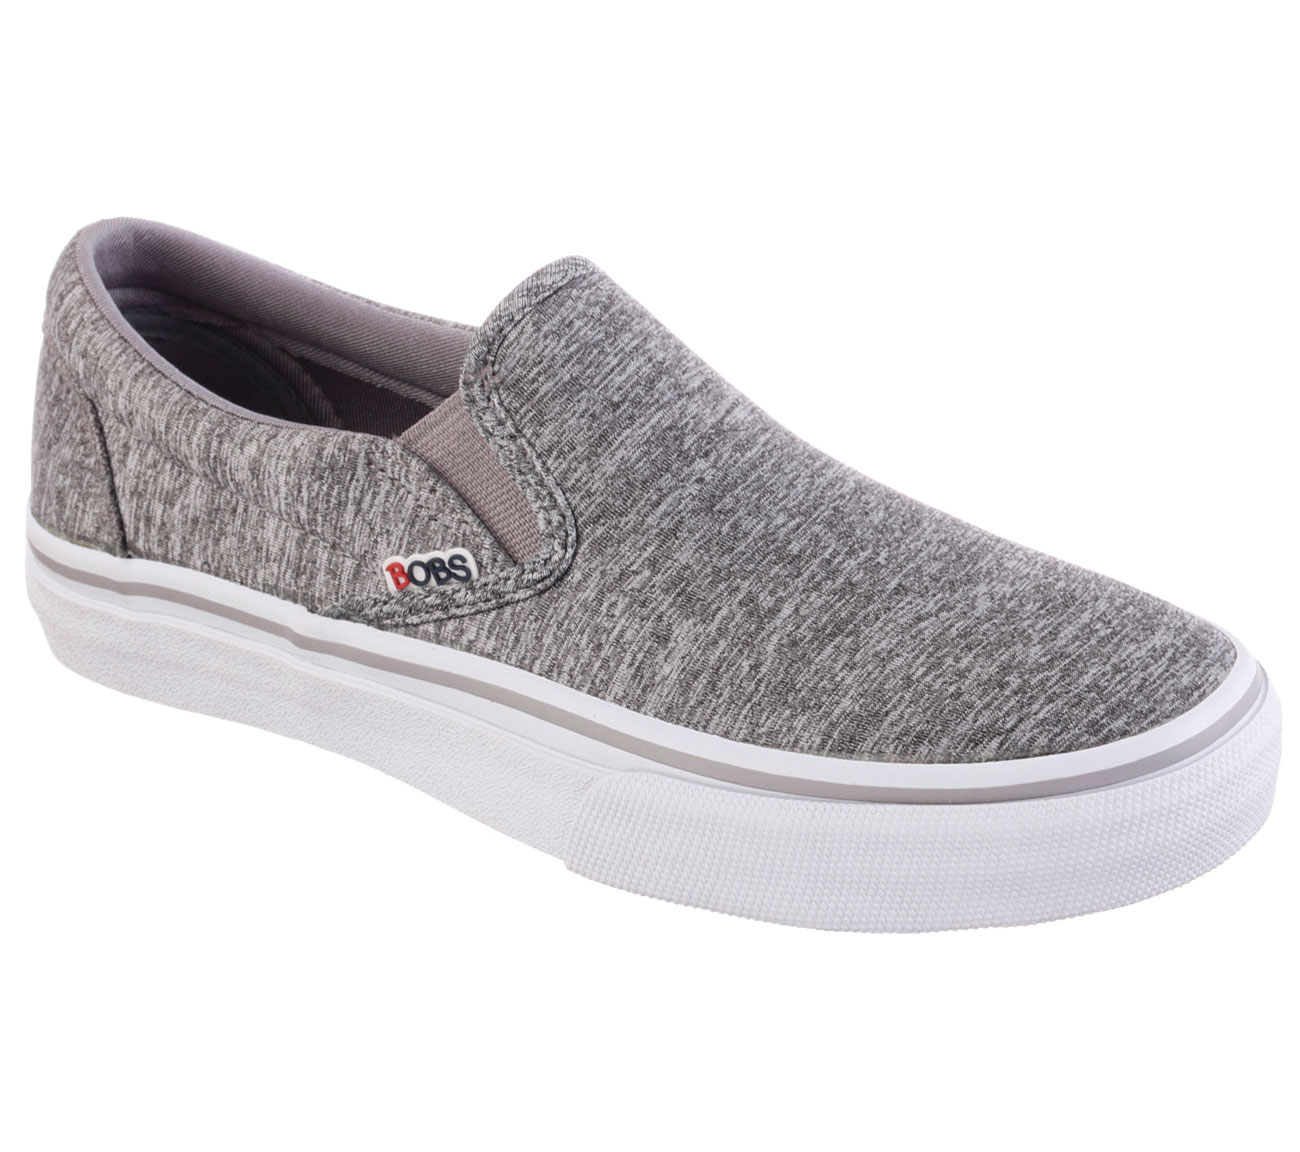 This review is fromWomen's Bobs Wild Horses Memory Foam Slip On